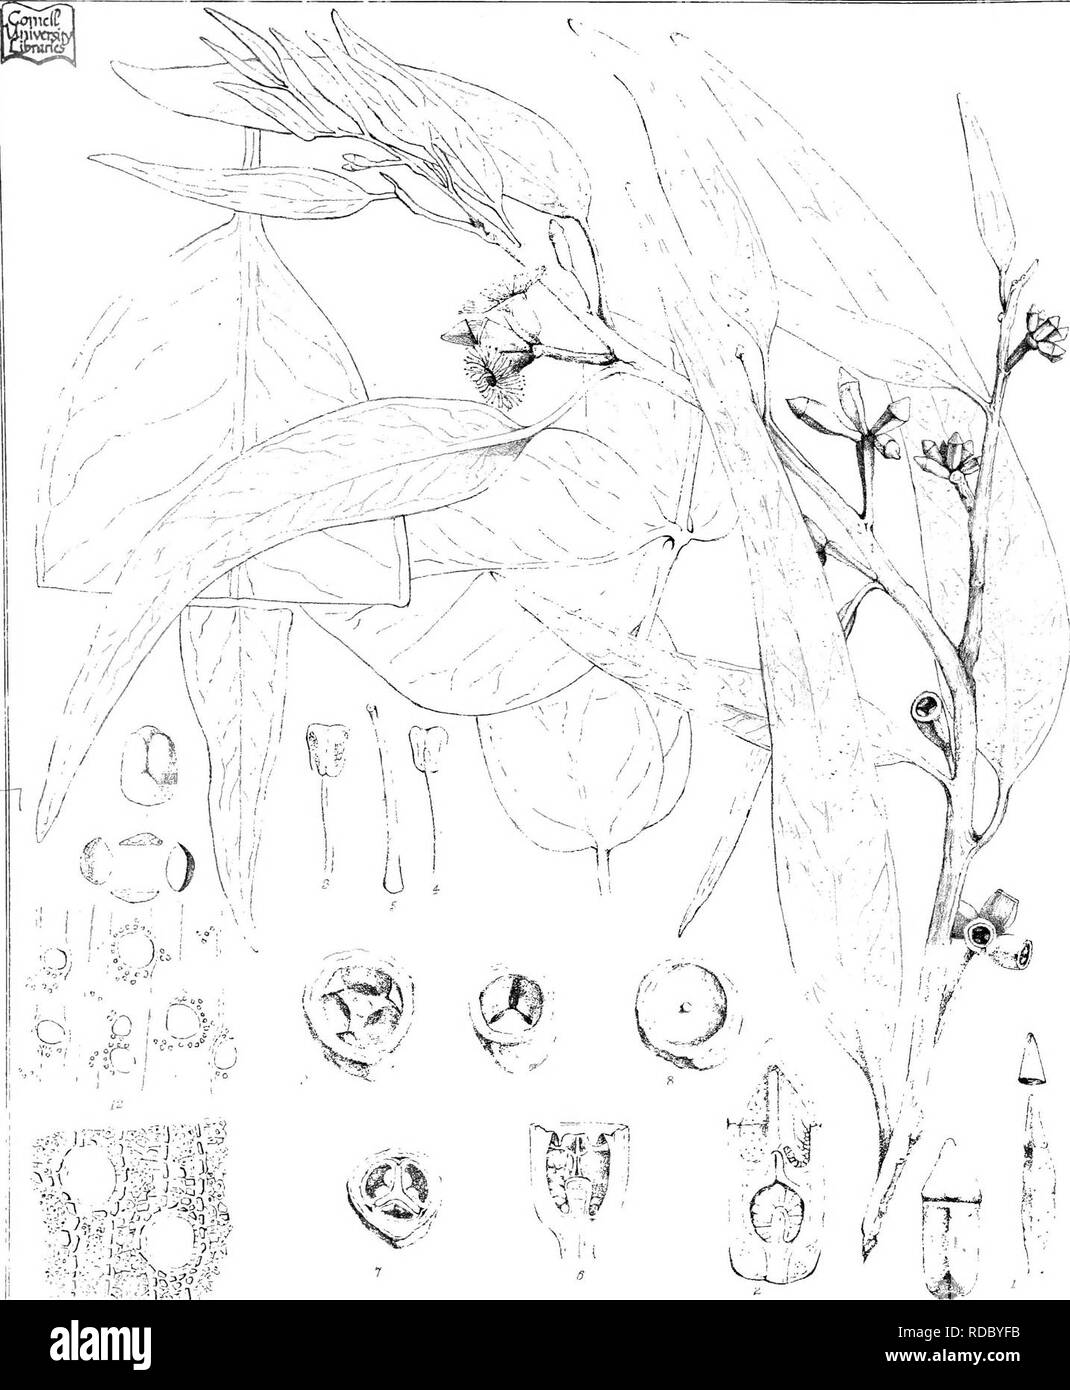 . Eucalyptographia. A descriptive atlas of the eucalypts of Australia and the adjoining islands;. Eucalyptus; Botany. .1 0^jmim:fm h.'iiir, von Mueilfirdirex CTroedHlPjCimp. m^e;al:y|'inj |D::niin)!giiJlfs,7W. Please note that these images are extracted from scanned page images that may have been digitally enhanced for readability - coloration and appearance of these illustrations may not perfectly resemble the original work.. Mueller, Ferdinand von, 1825-1896. Melbourne, J. Ferres, Govt. Print; [etc. ,etc. ] - Stock Image